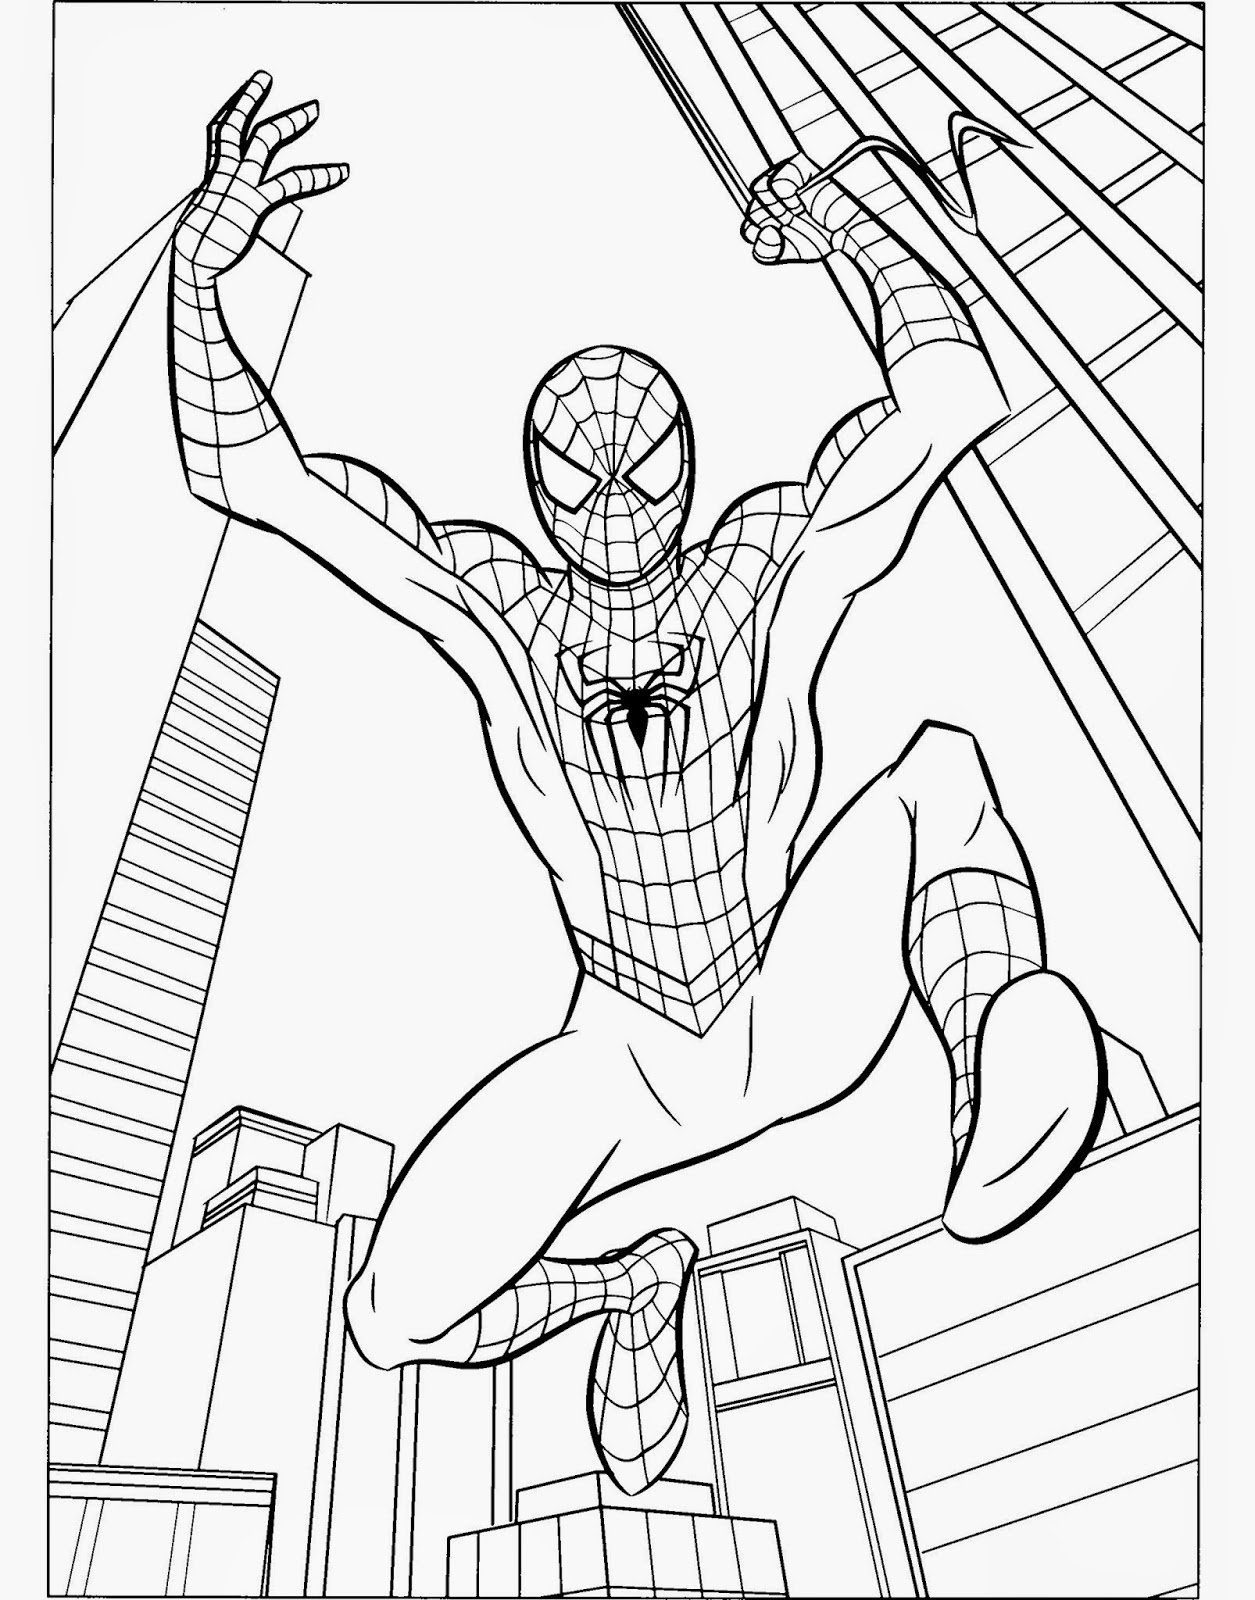 spiderman picture to color print download spiderman coloring pages an enjoyable color picture to spiderman